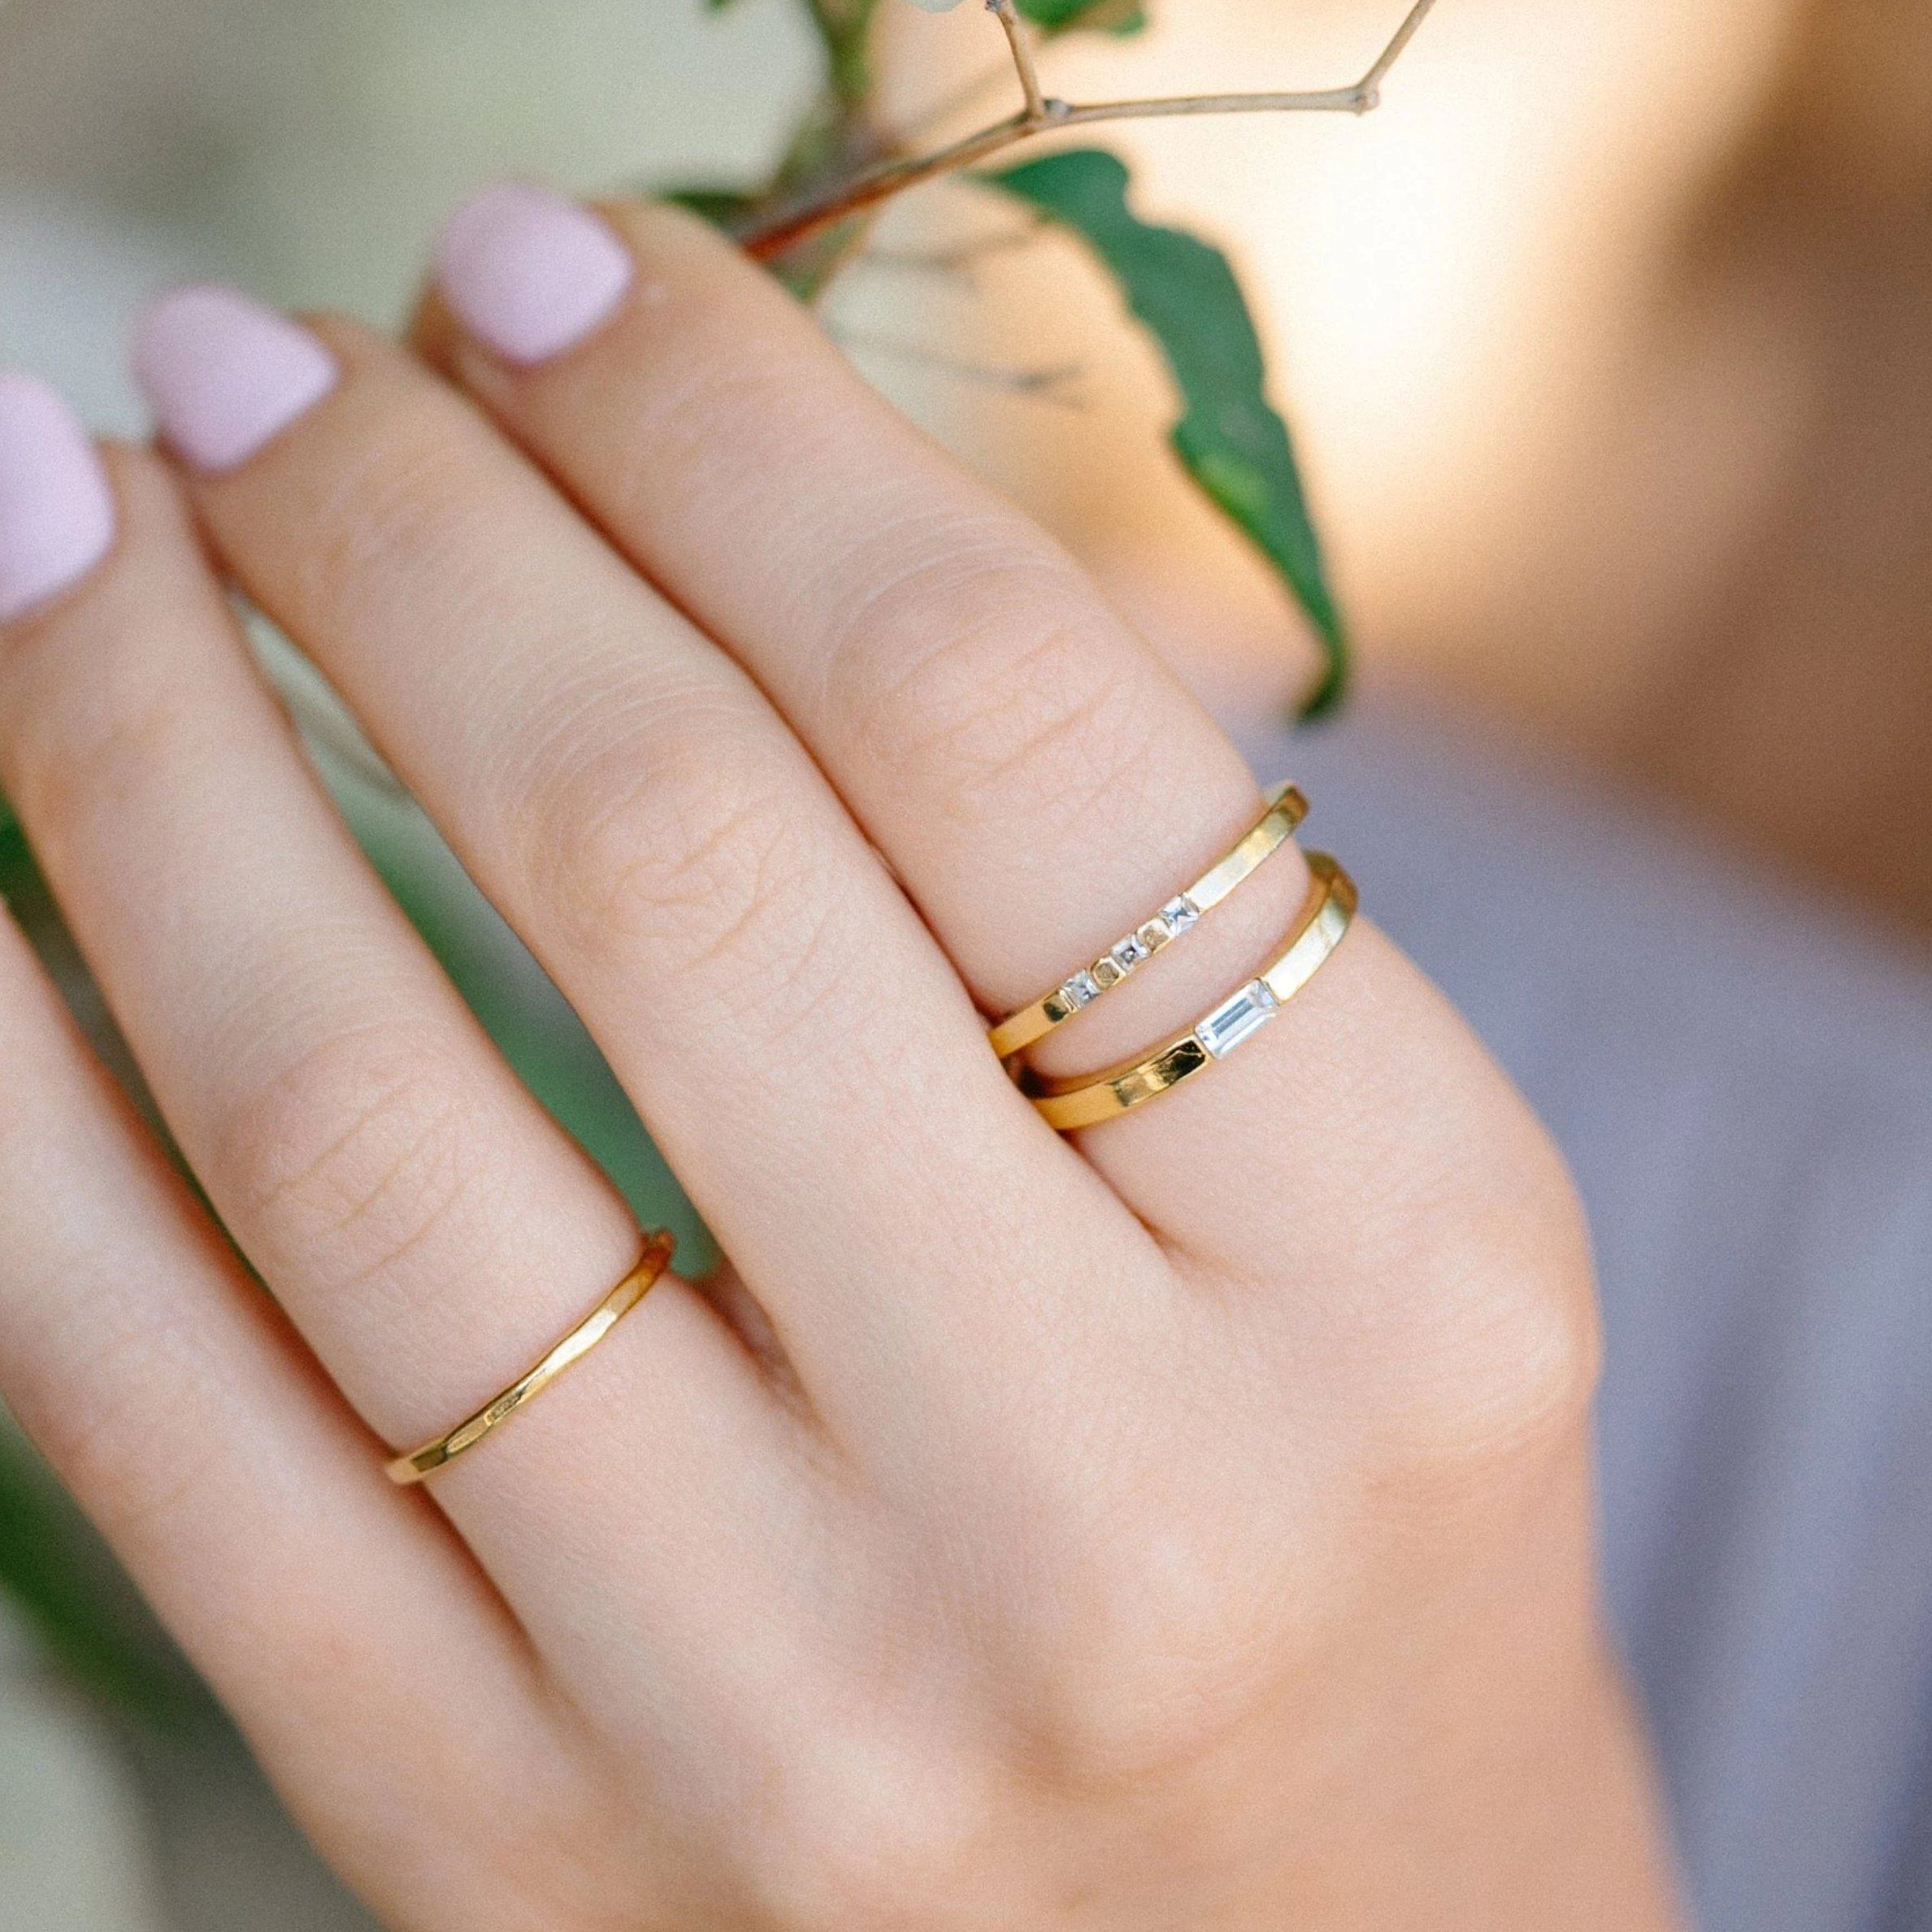 Up close image of models hand holding flowers & wearing Baguette ring.